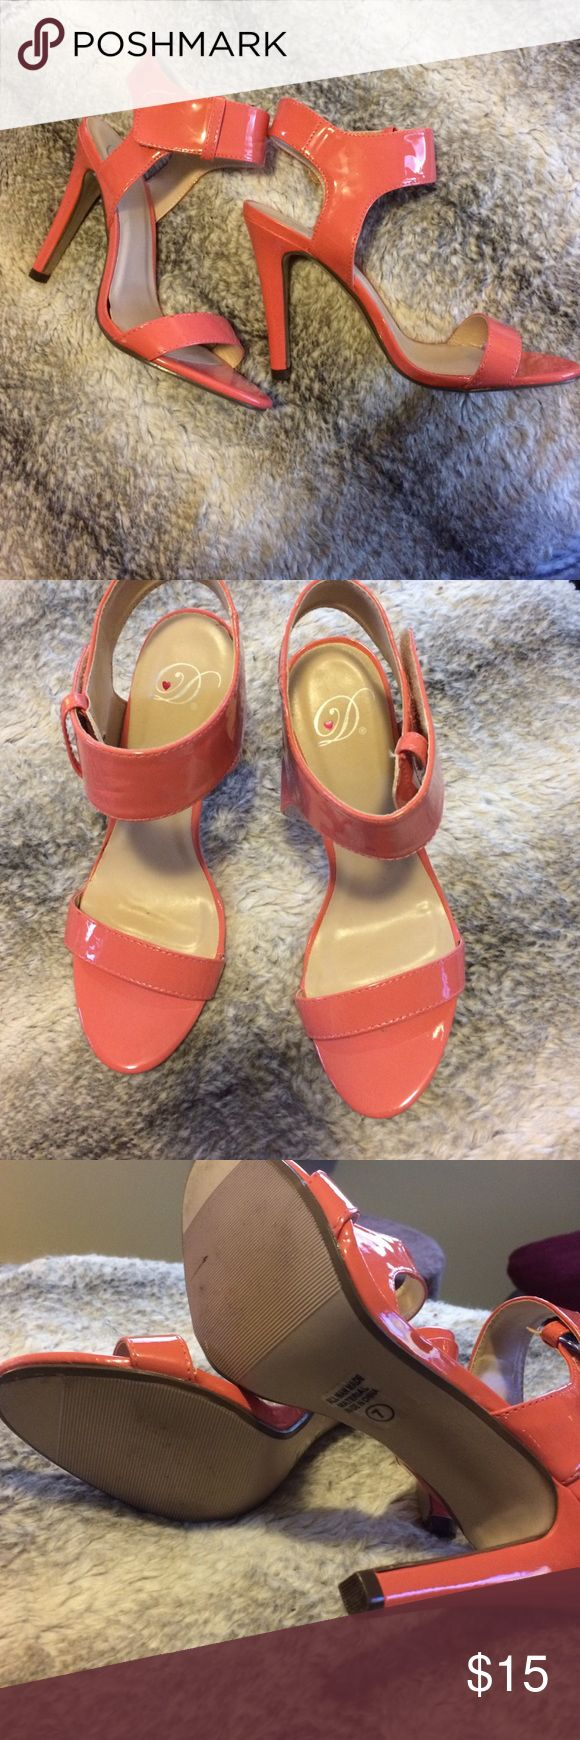 Strapped Coral Pink Heeled Sandals Heels Dollhouse Like new coral pink strappy heeled sandals. Size 7. Excellent condition. Dollhouse Shoes Heels